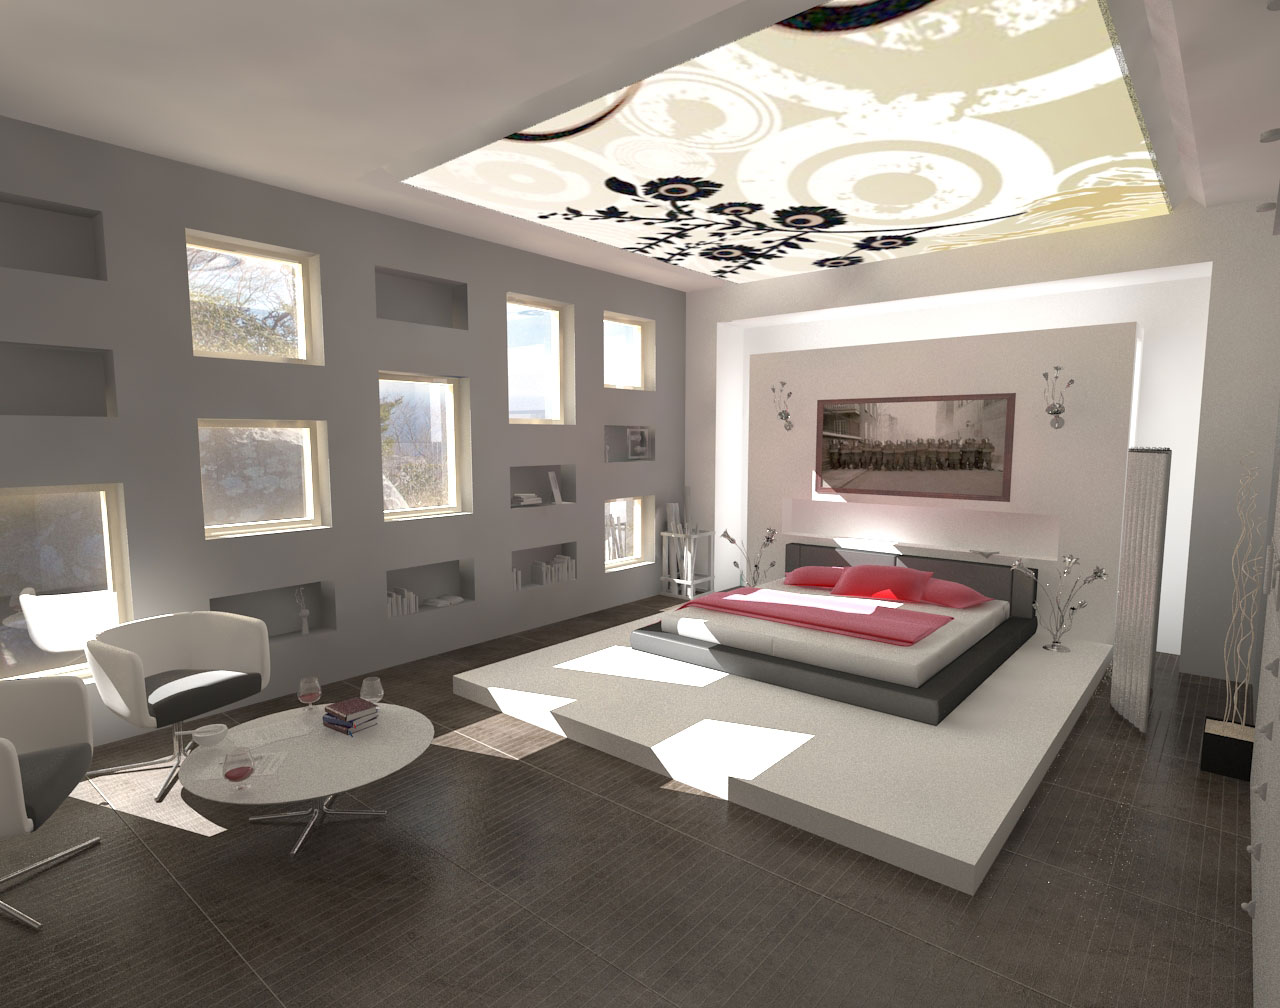 Excellent Modern Bedroom Interior Design Ideas 1280 x 1008 · 183 kB · jpeg